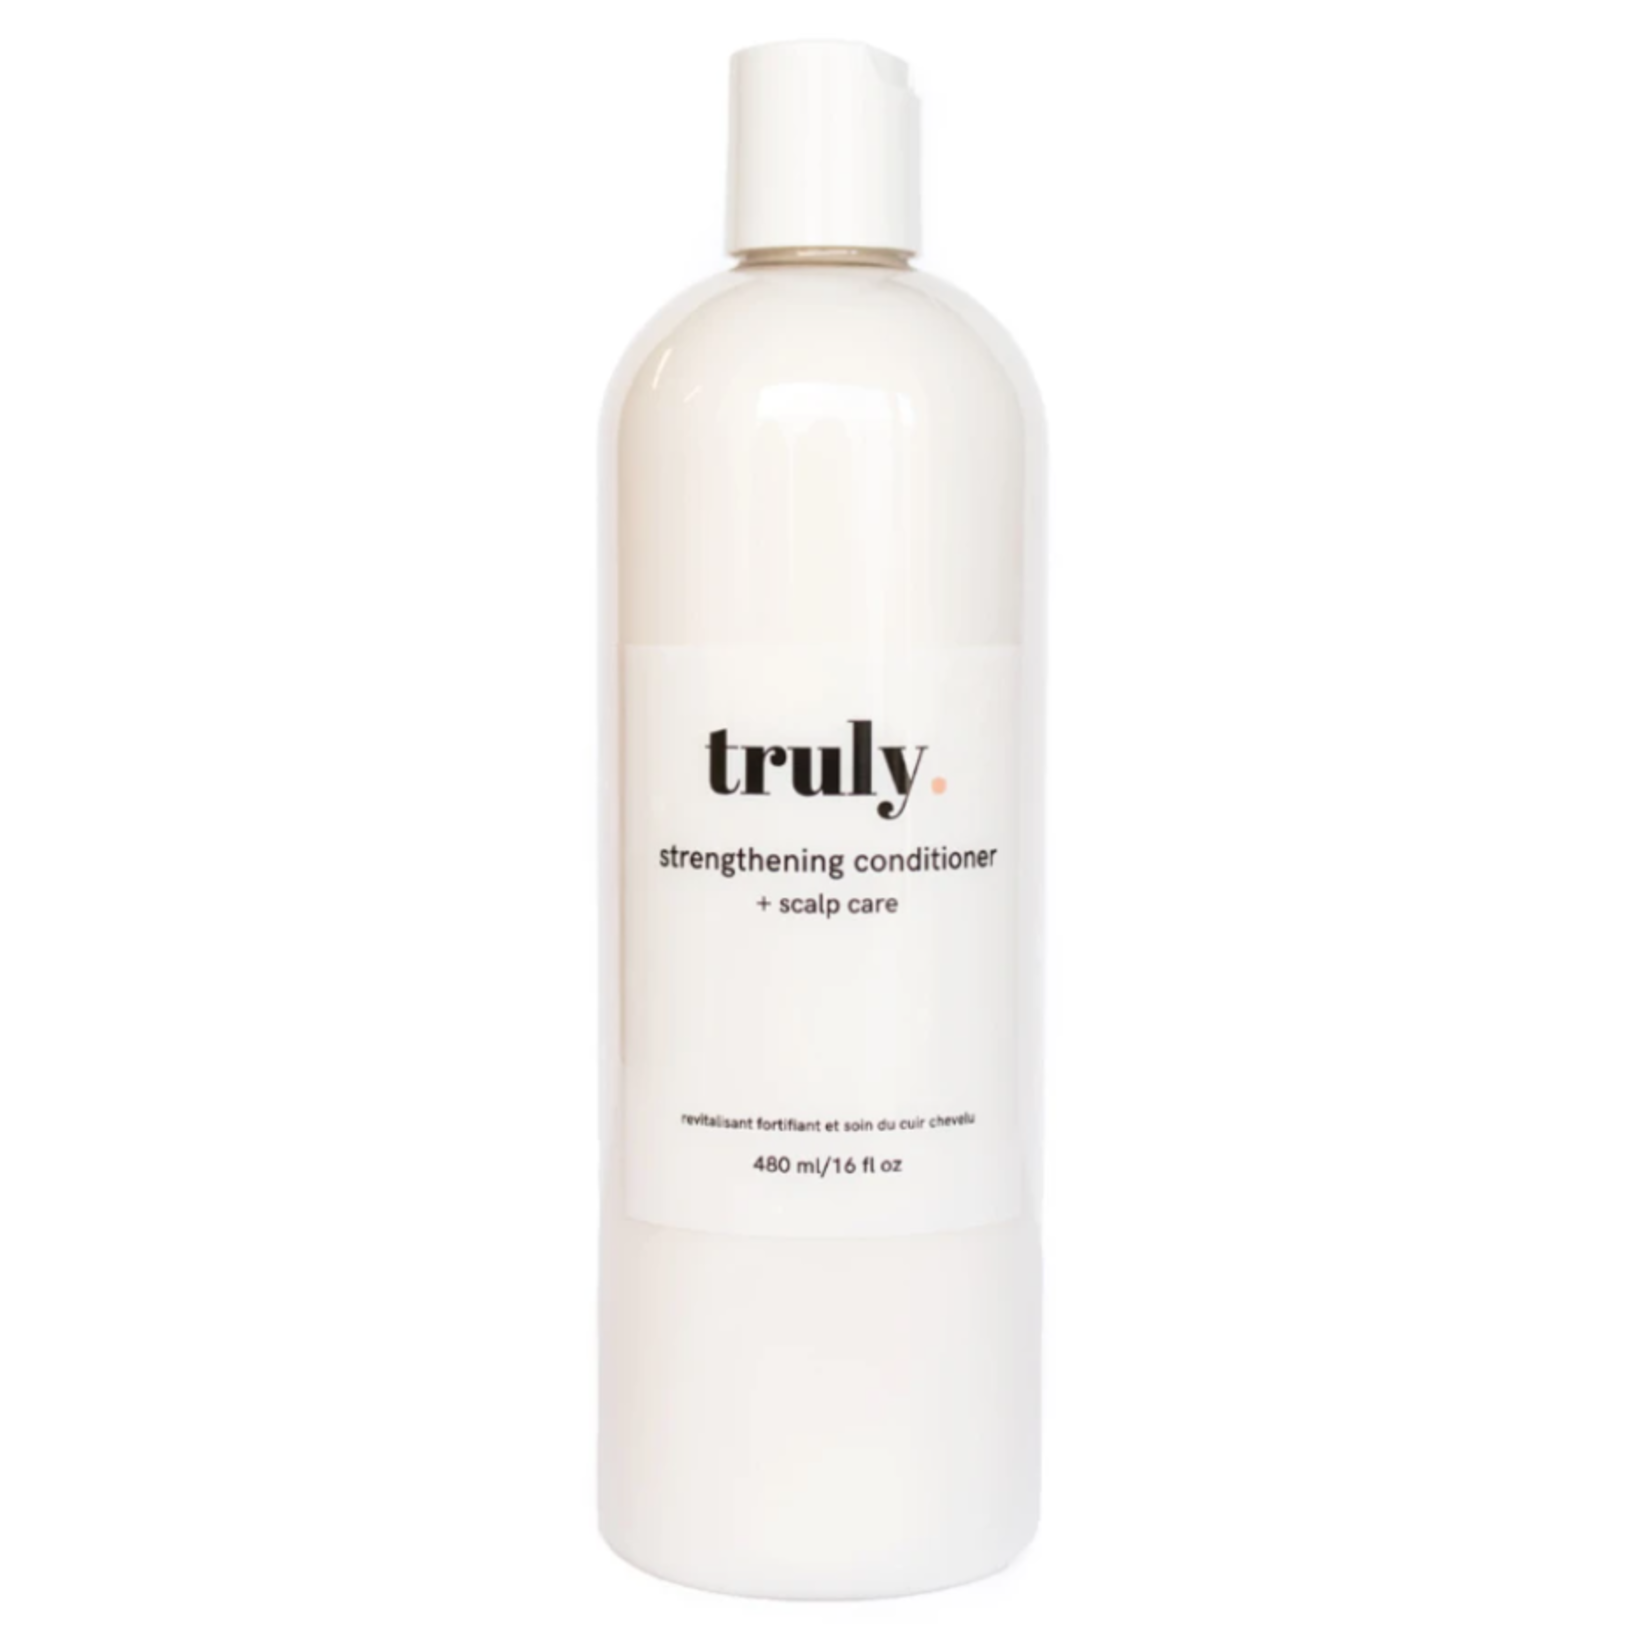 Truly lifestylebrand STRENGTHENING CONDITIONER + SCALP CARE